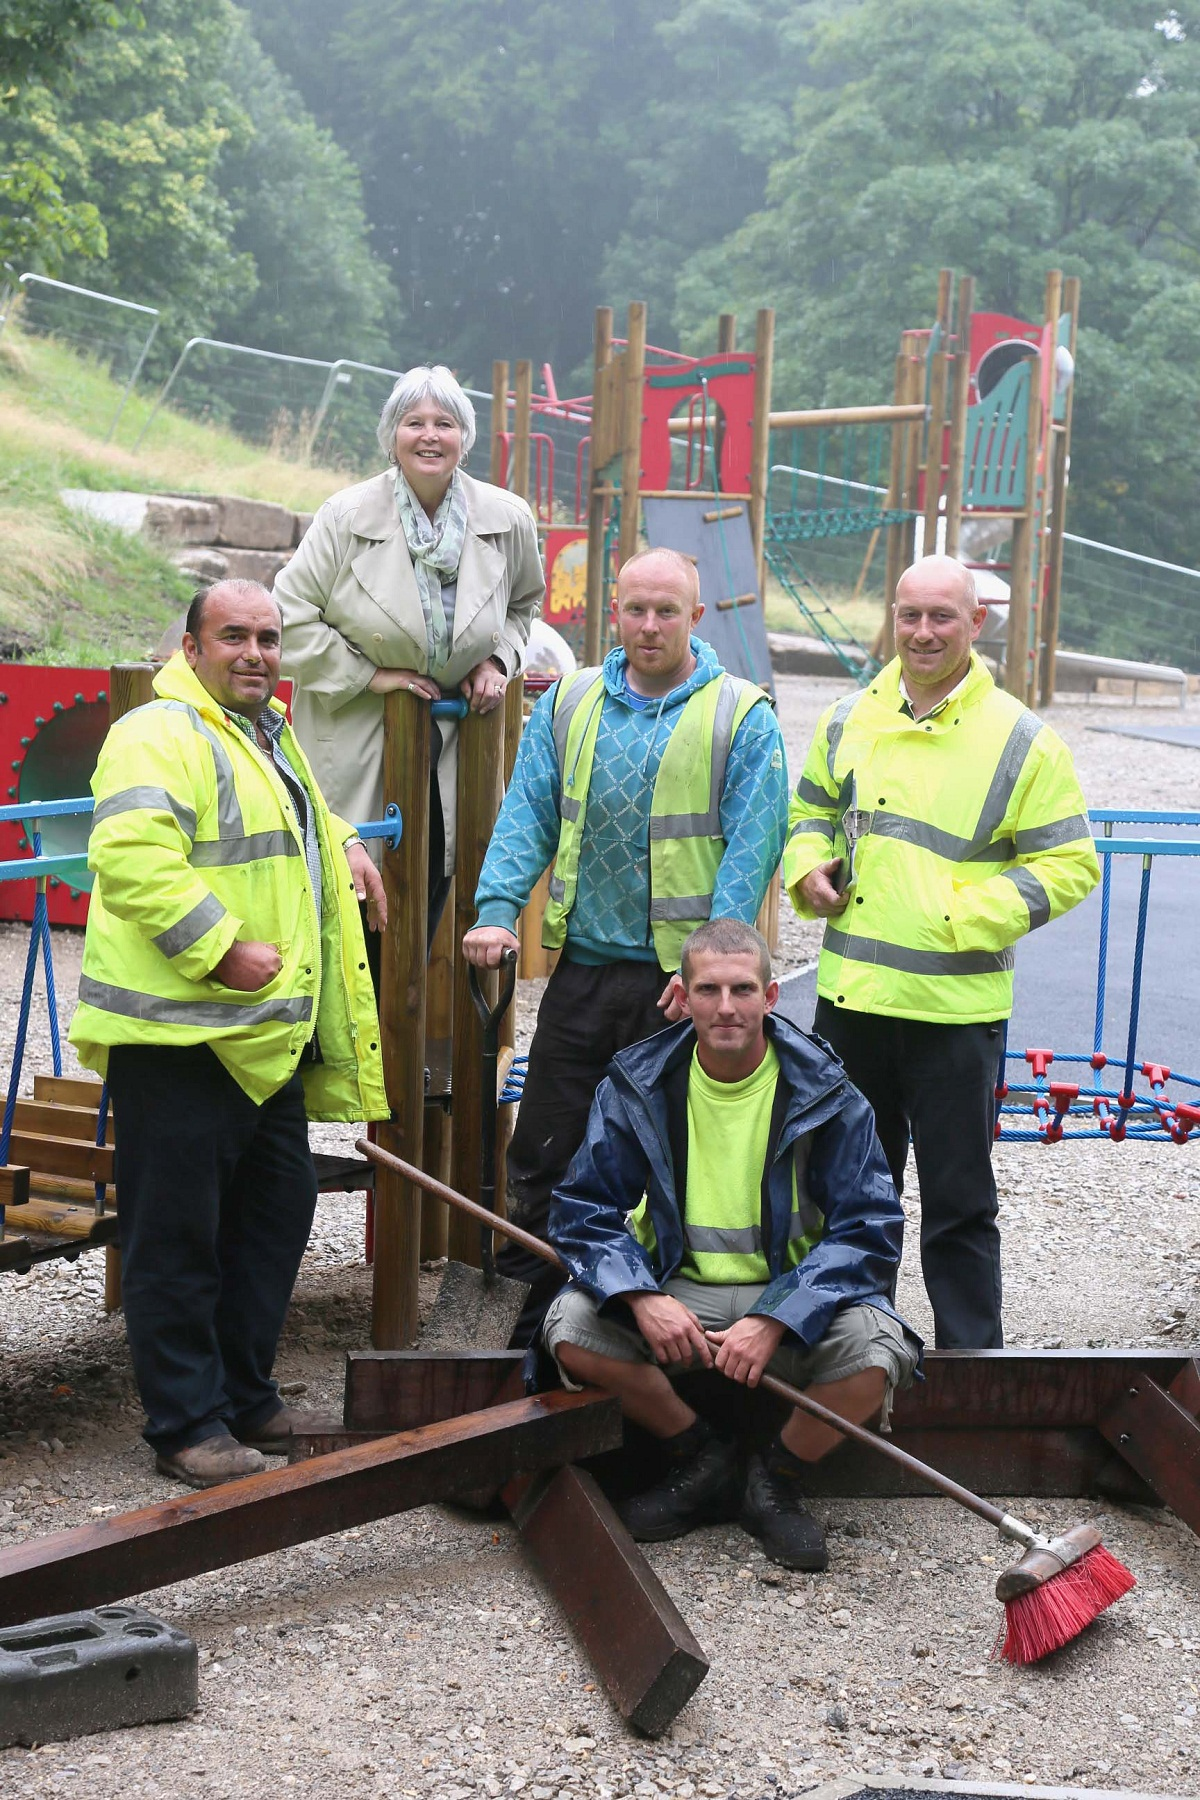 Preparing for the opening of the new Cliffe Castle Park playground are, from left, director of landscape engineering Mark Butterworth, Keighley Mayor Councillor Sally Walsh, site foreman Andy Kelly, council worker Lukas Richardson (front) and technical of